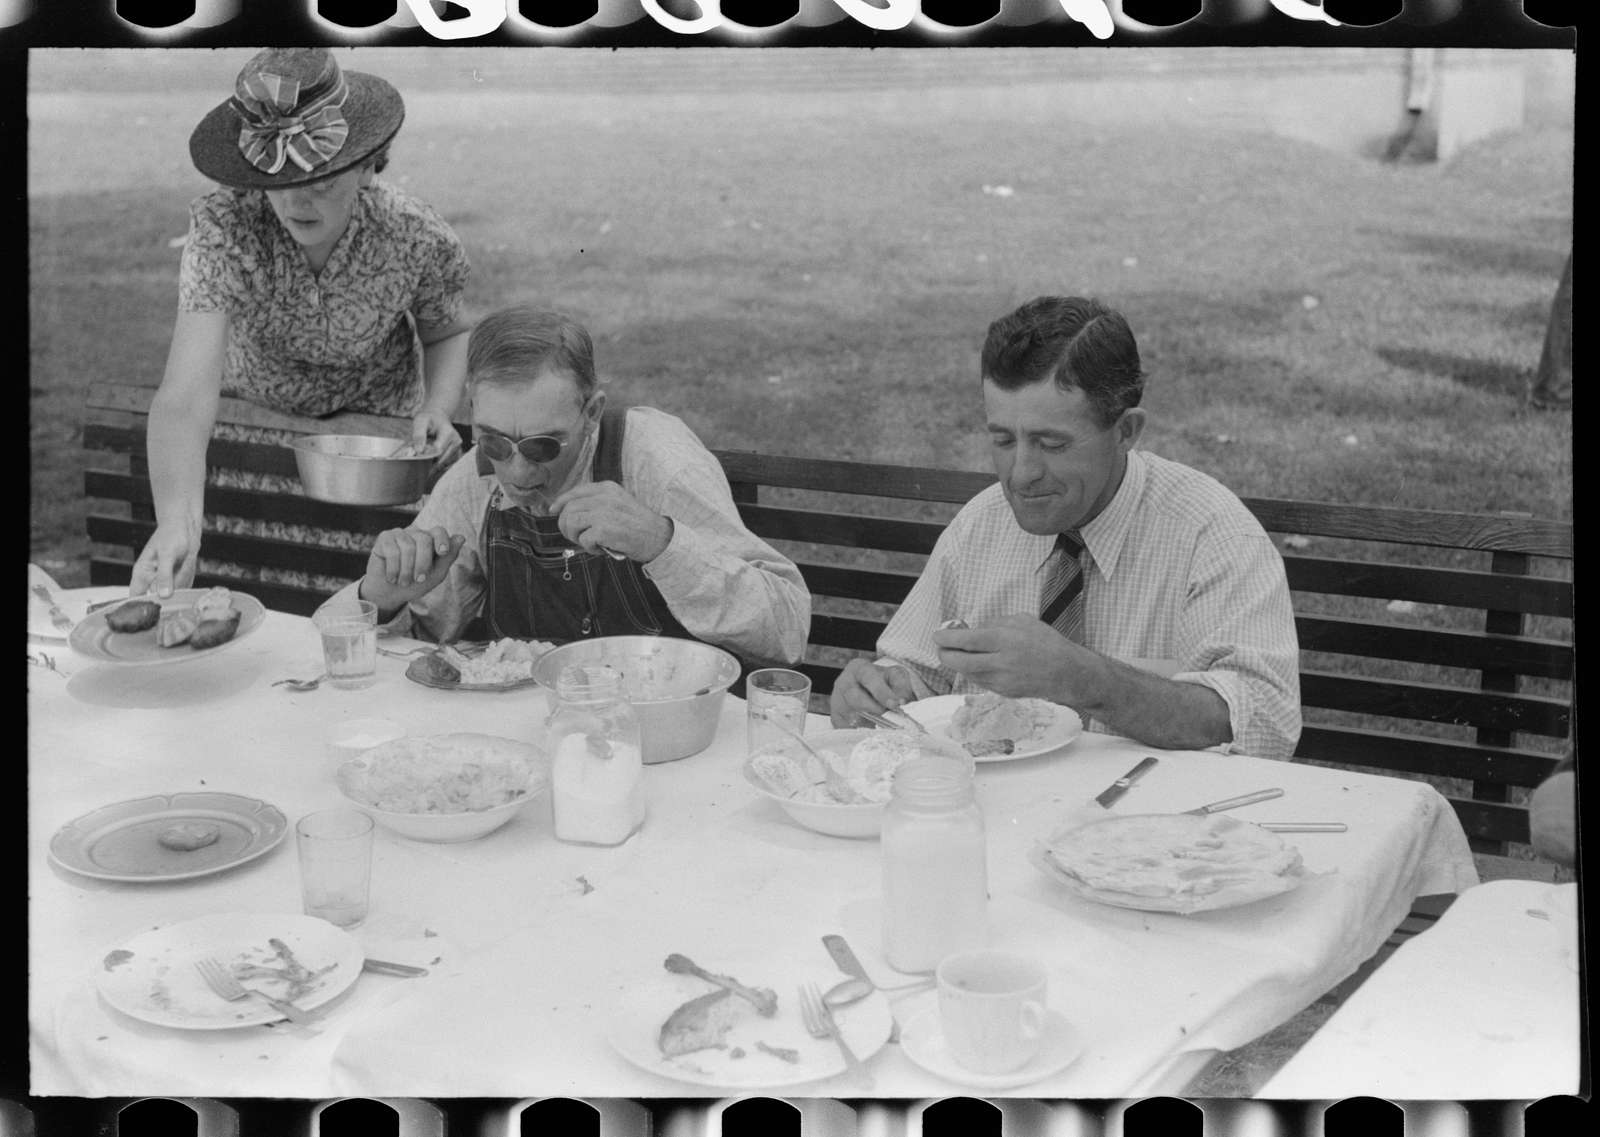 Eating dinner served for benefit of the church in courthouse yard on court day. Campton, Wolfe County, Kentucky